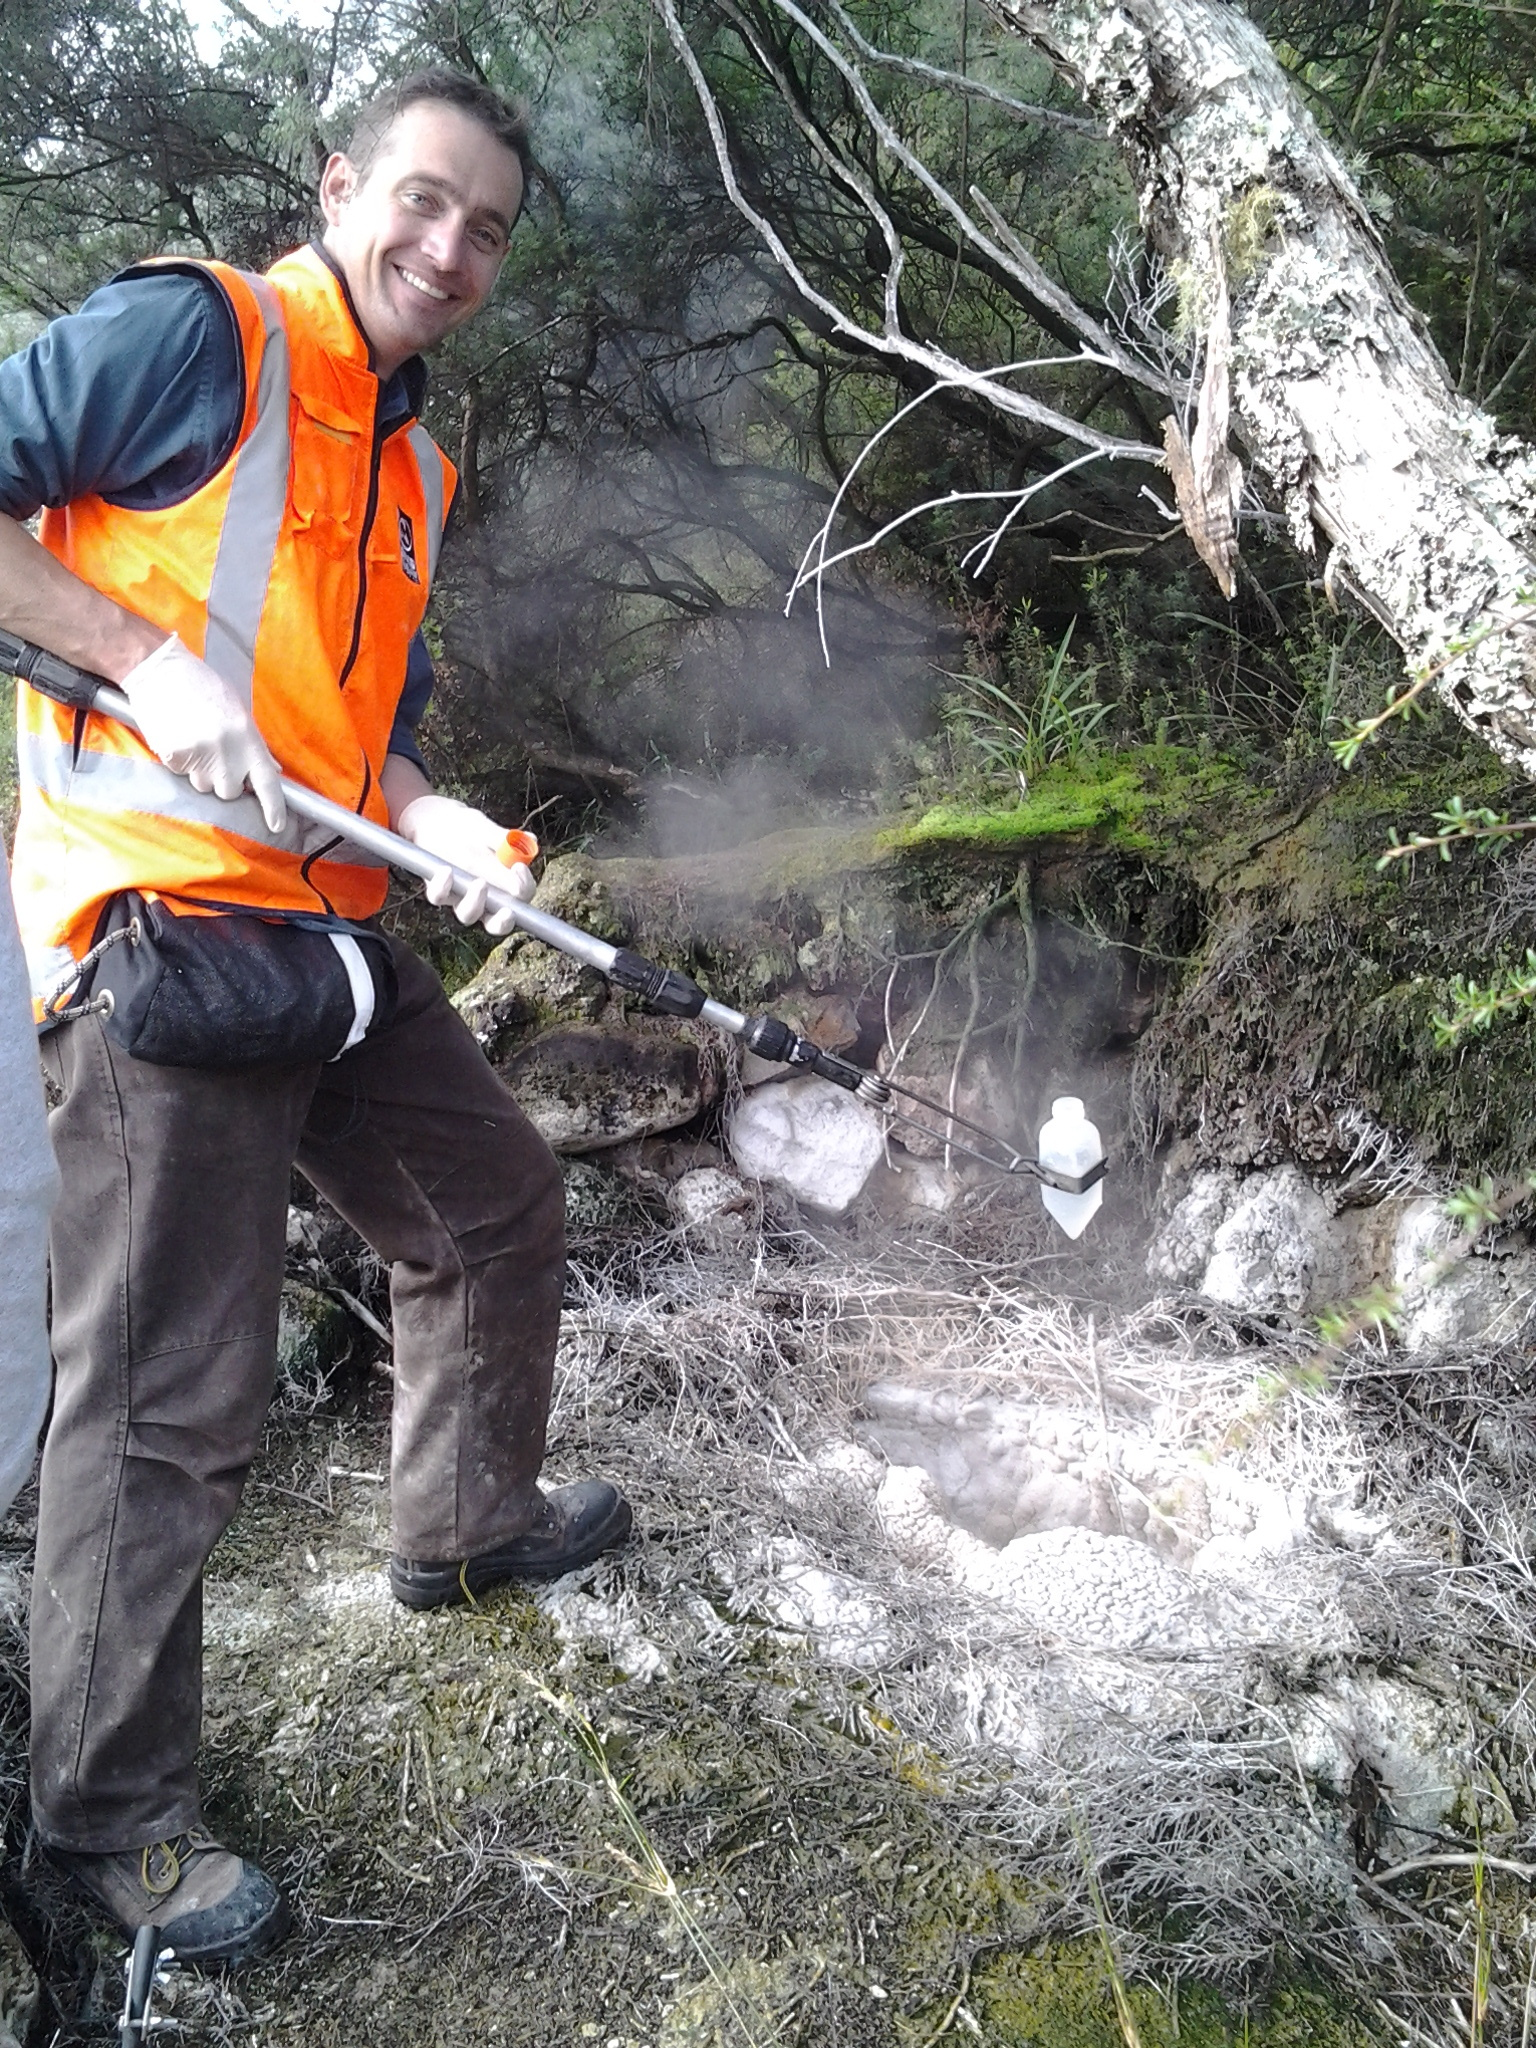 Matthew Stott sampling a small geothermal hotspring ( p1. 0999) at Orakei Korako